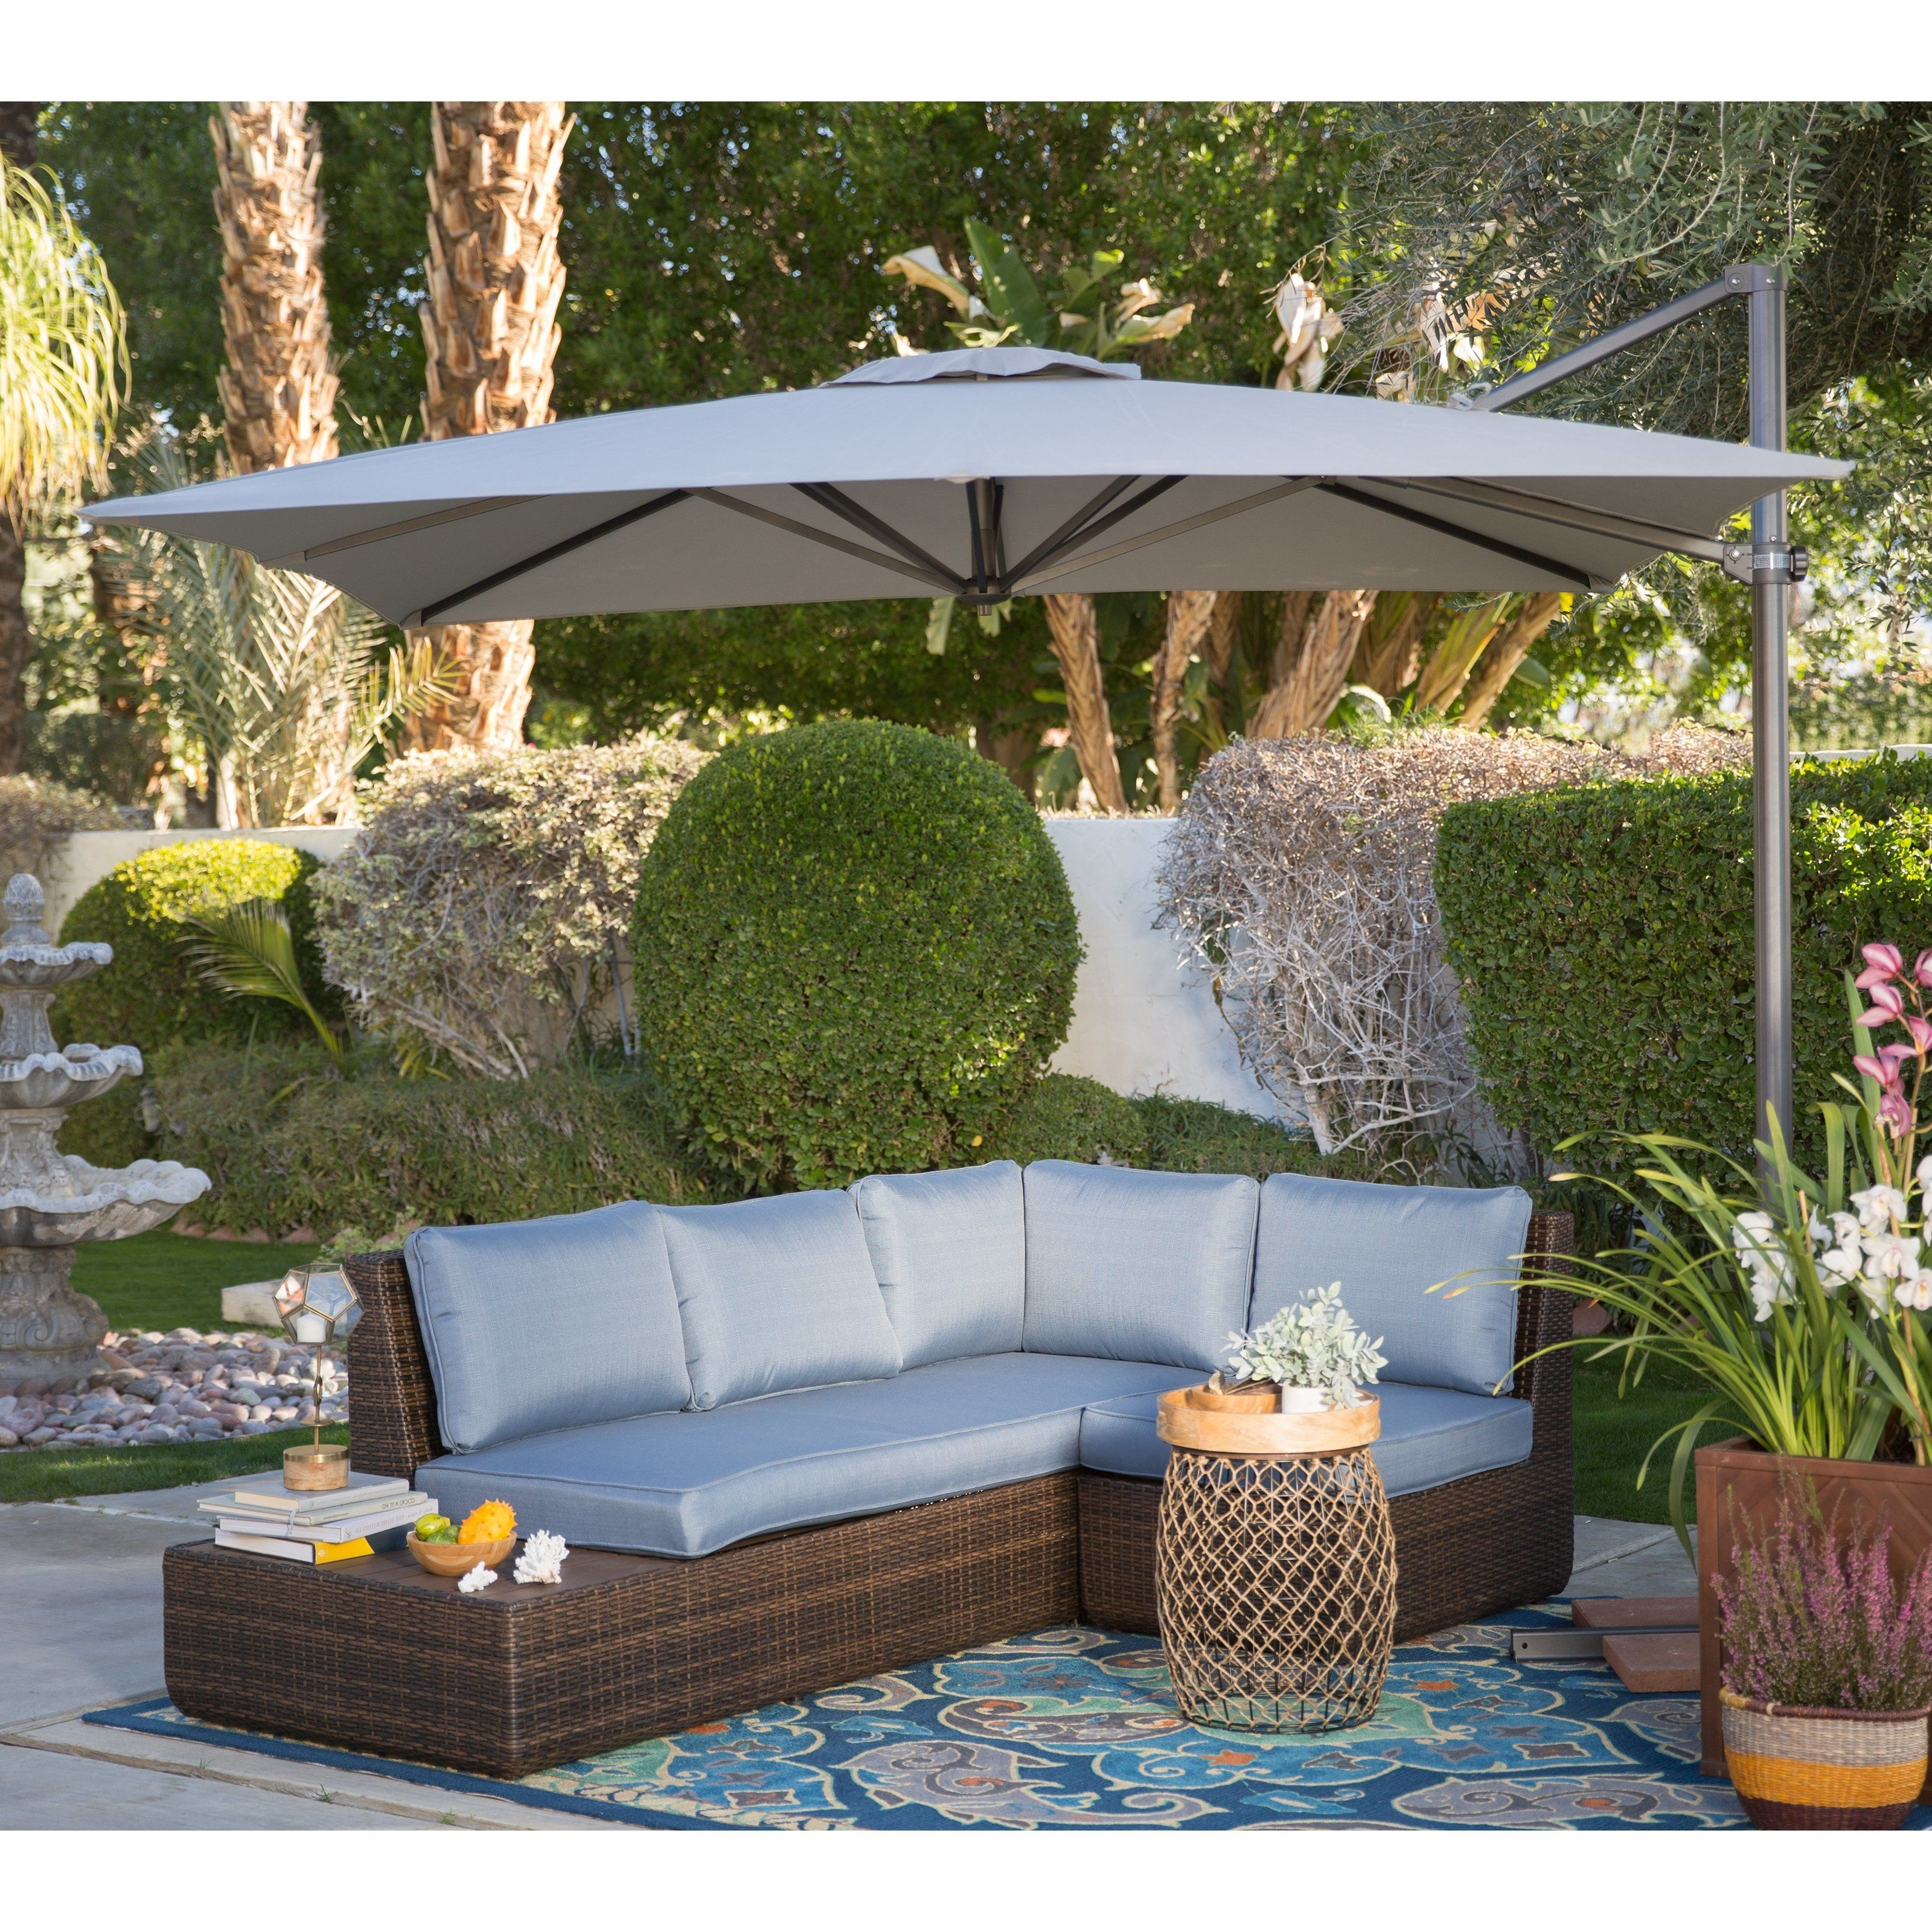 From Hayneedle With Preferred Offset Patio Umbrellas (View 11 of 20)